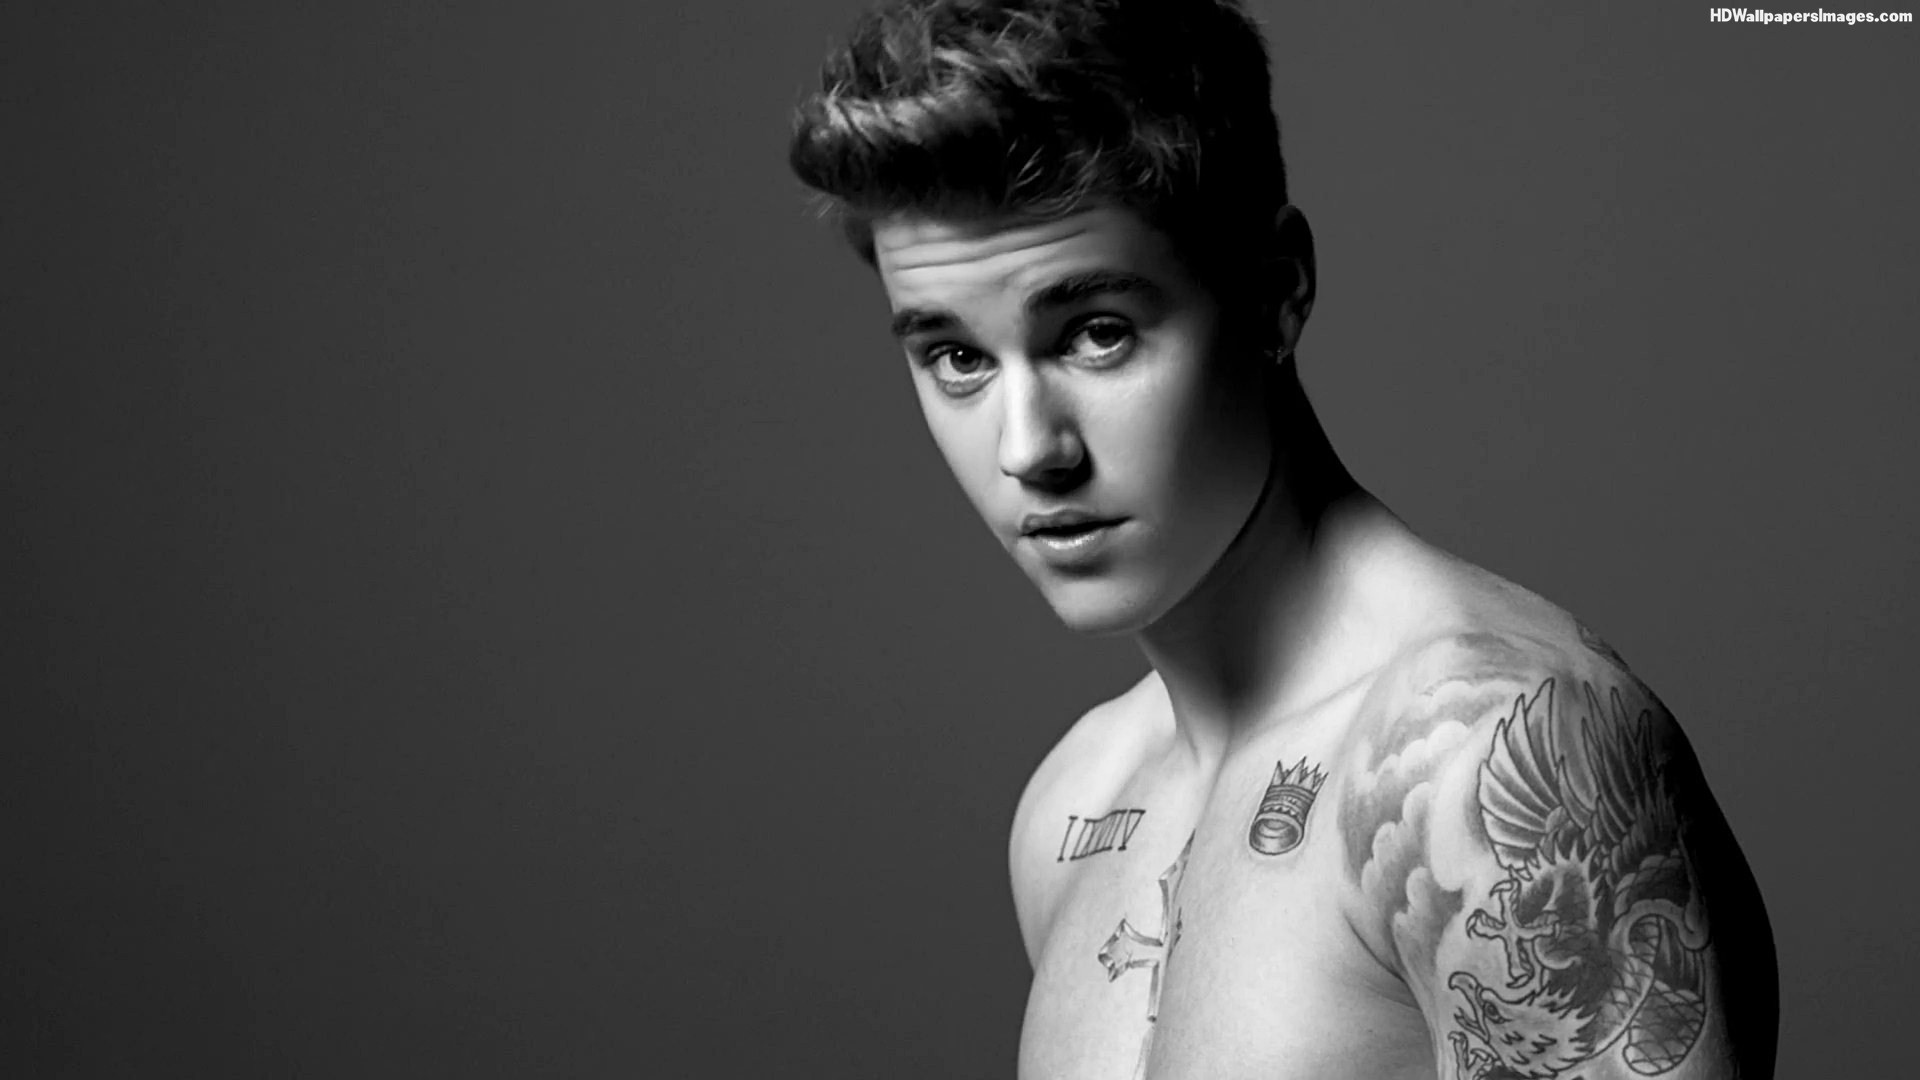 Justin Bieber Wallpapers 2015 Top Collections of Pictures Images 1920x1080